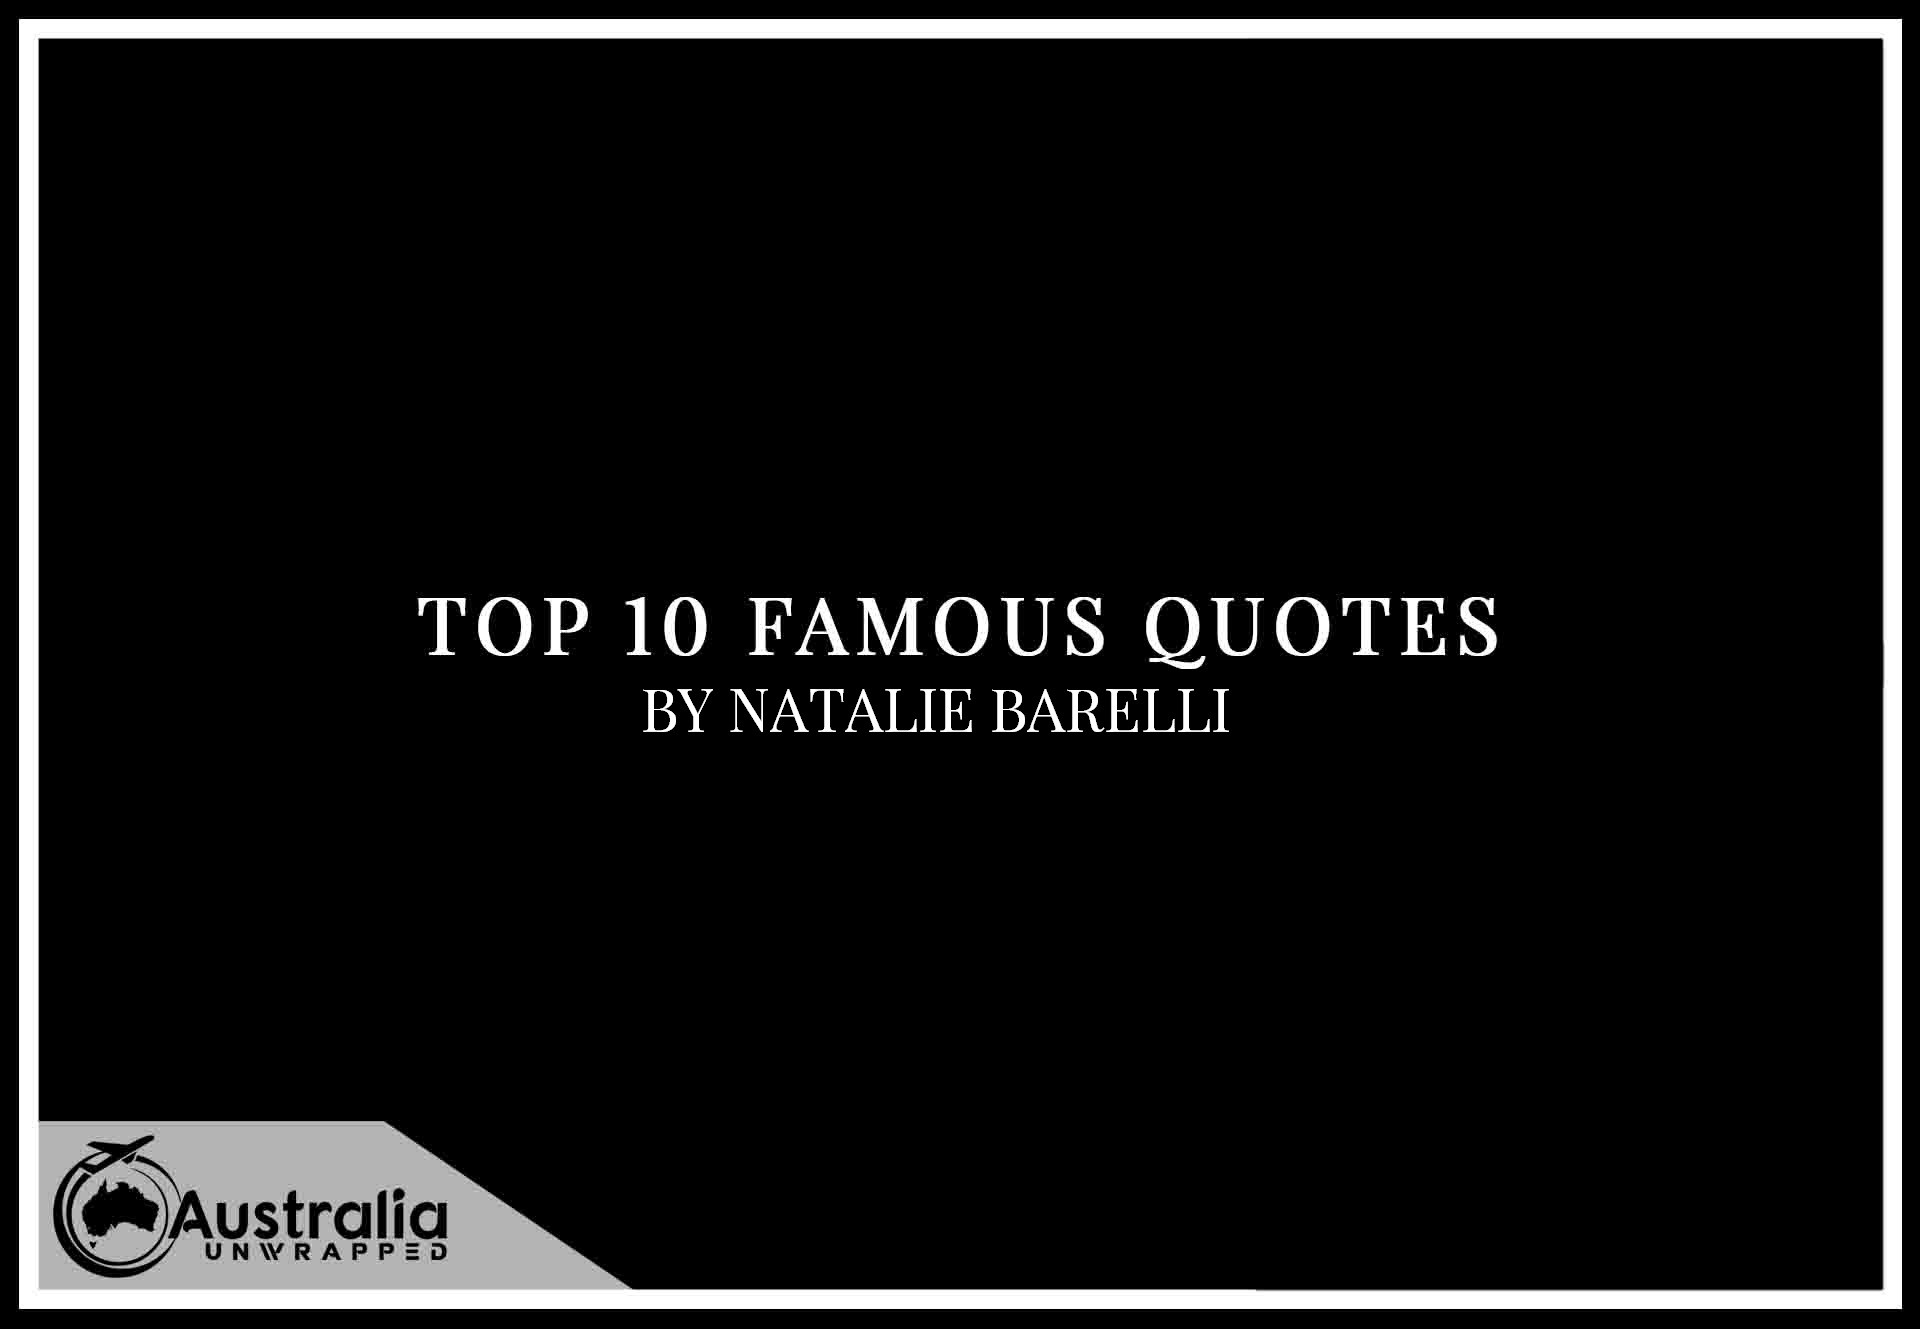 Top 10 Famous Quotes by Author Natalie Barelli